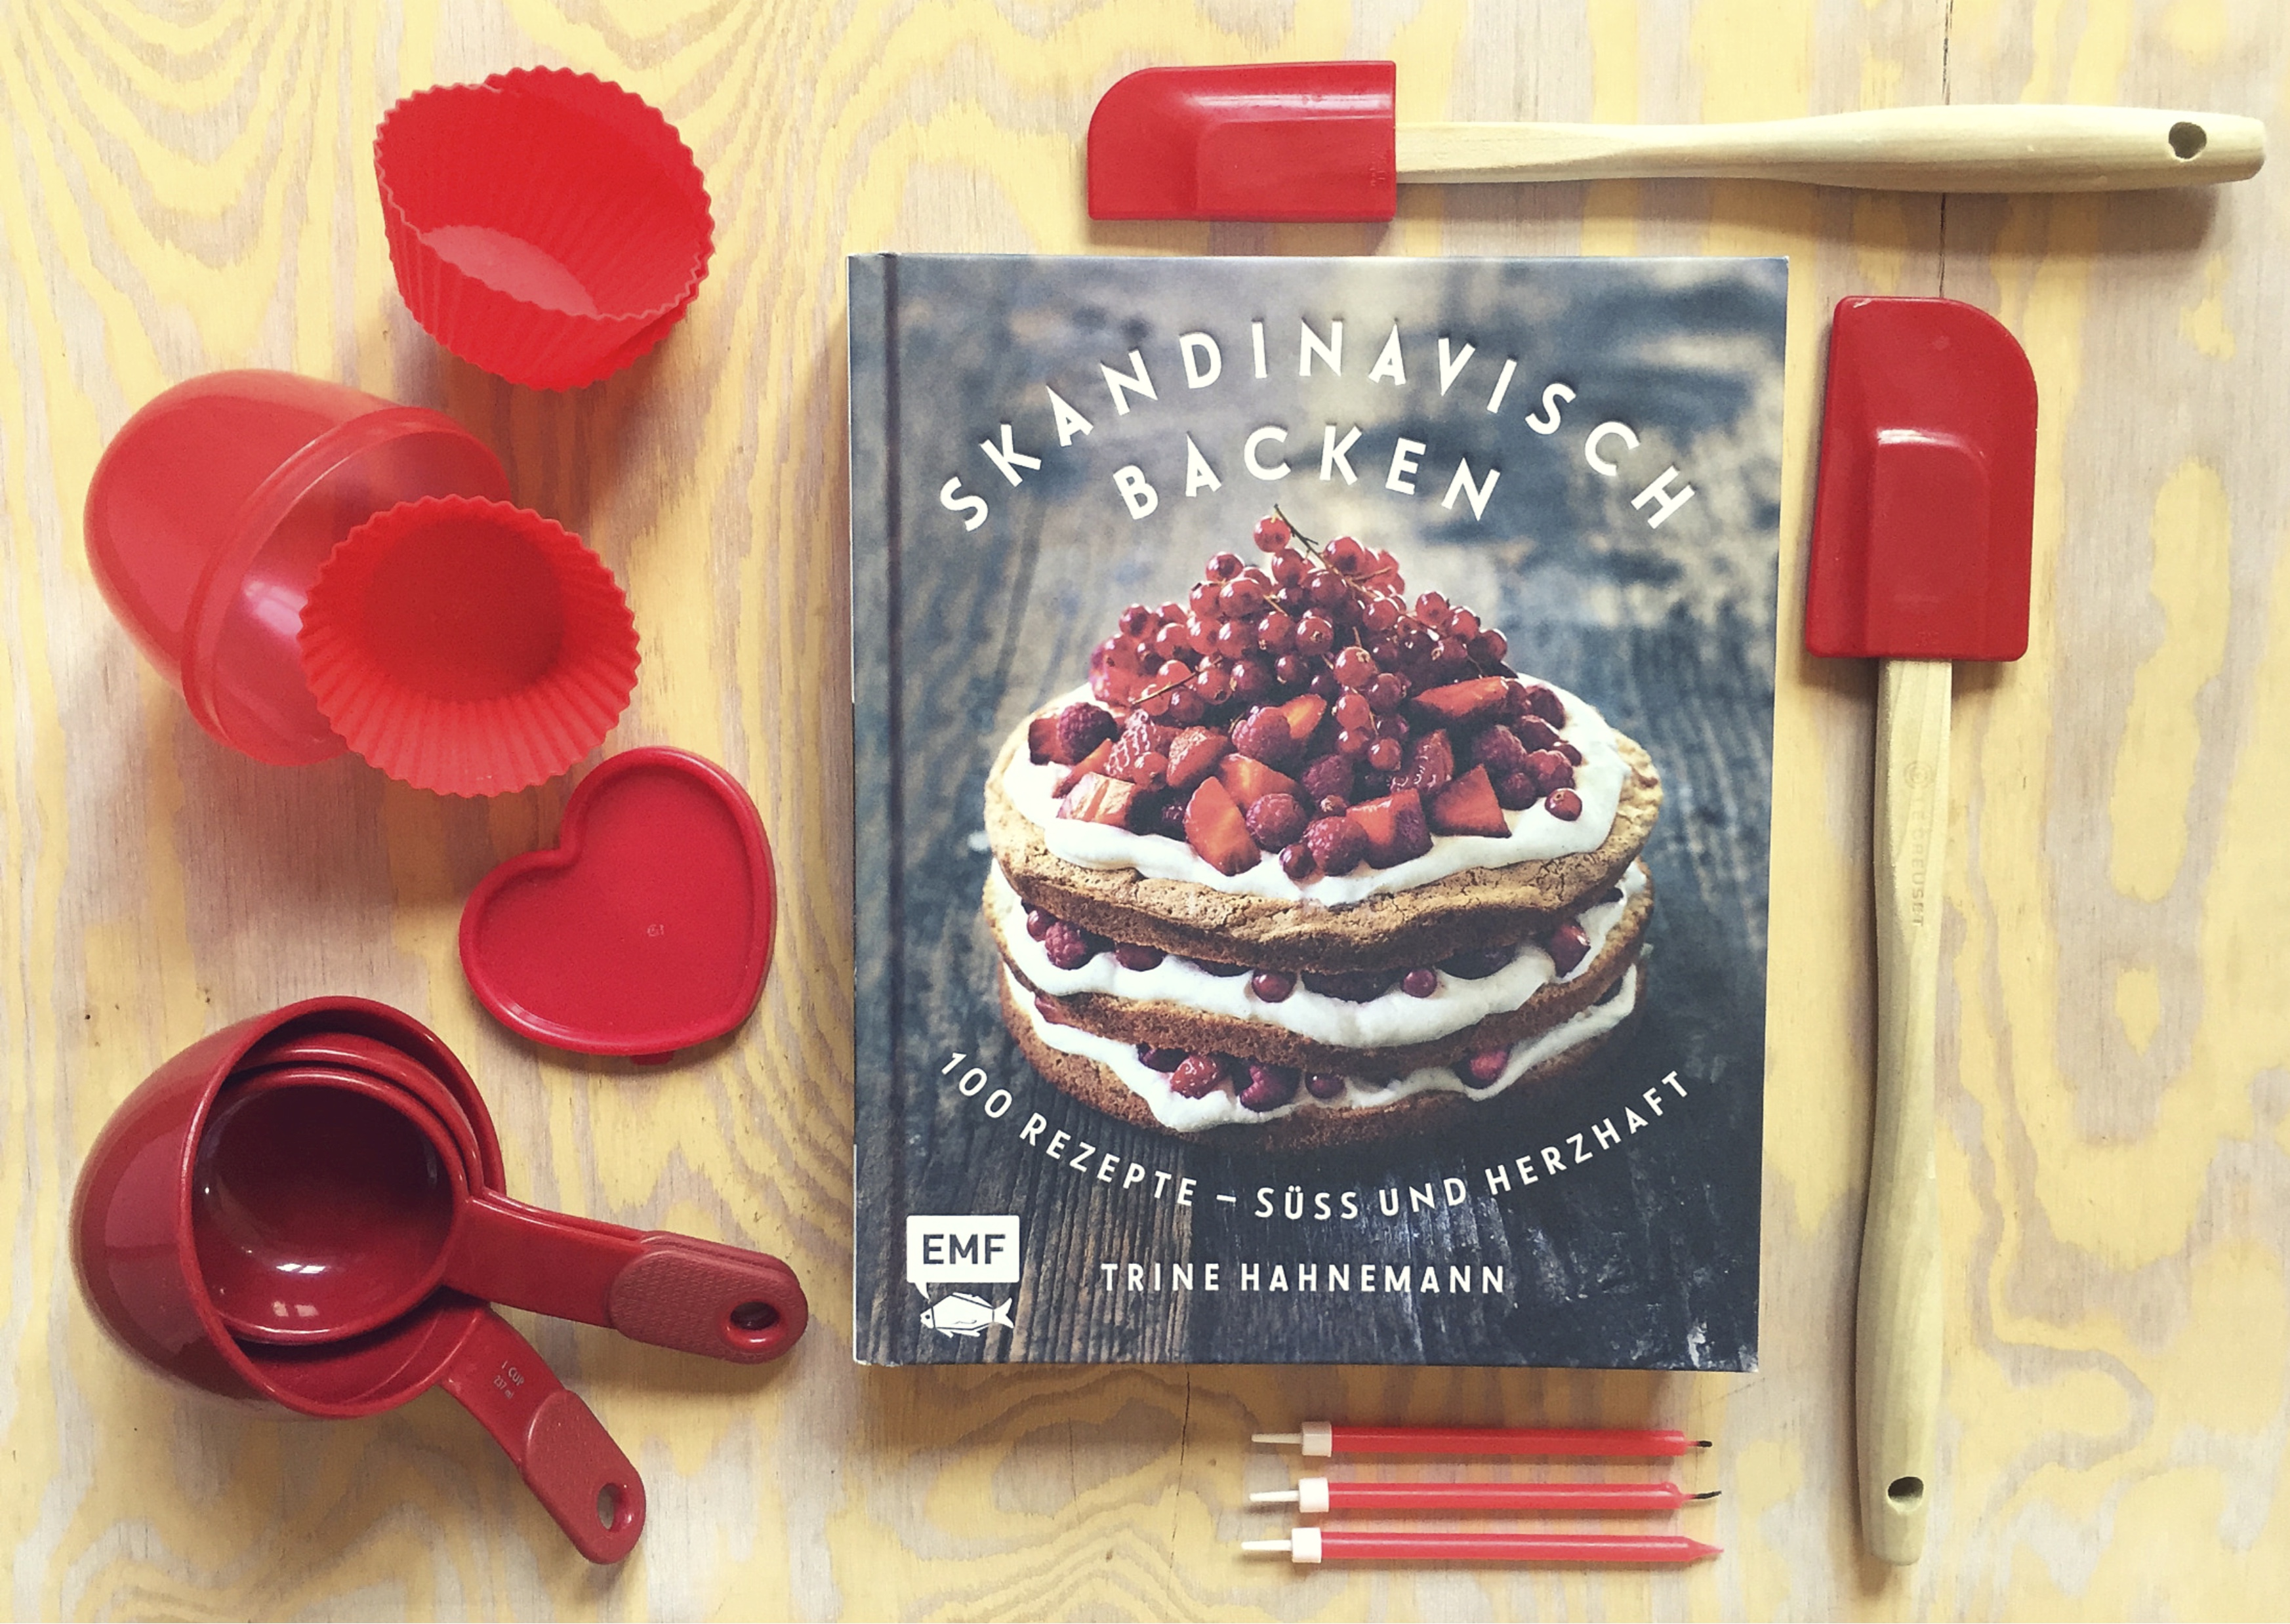 """Skandinavisch backen"" von Edition Michael Fischer - auf Pinterest unter https://www.pinterest.com/EMF_Verlag/"